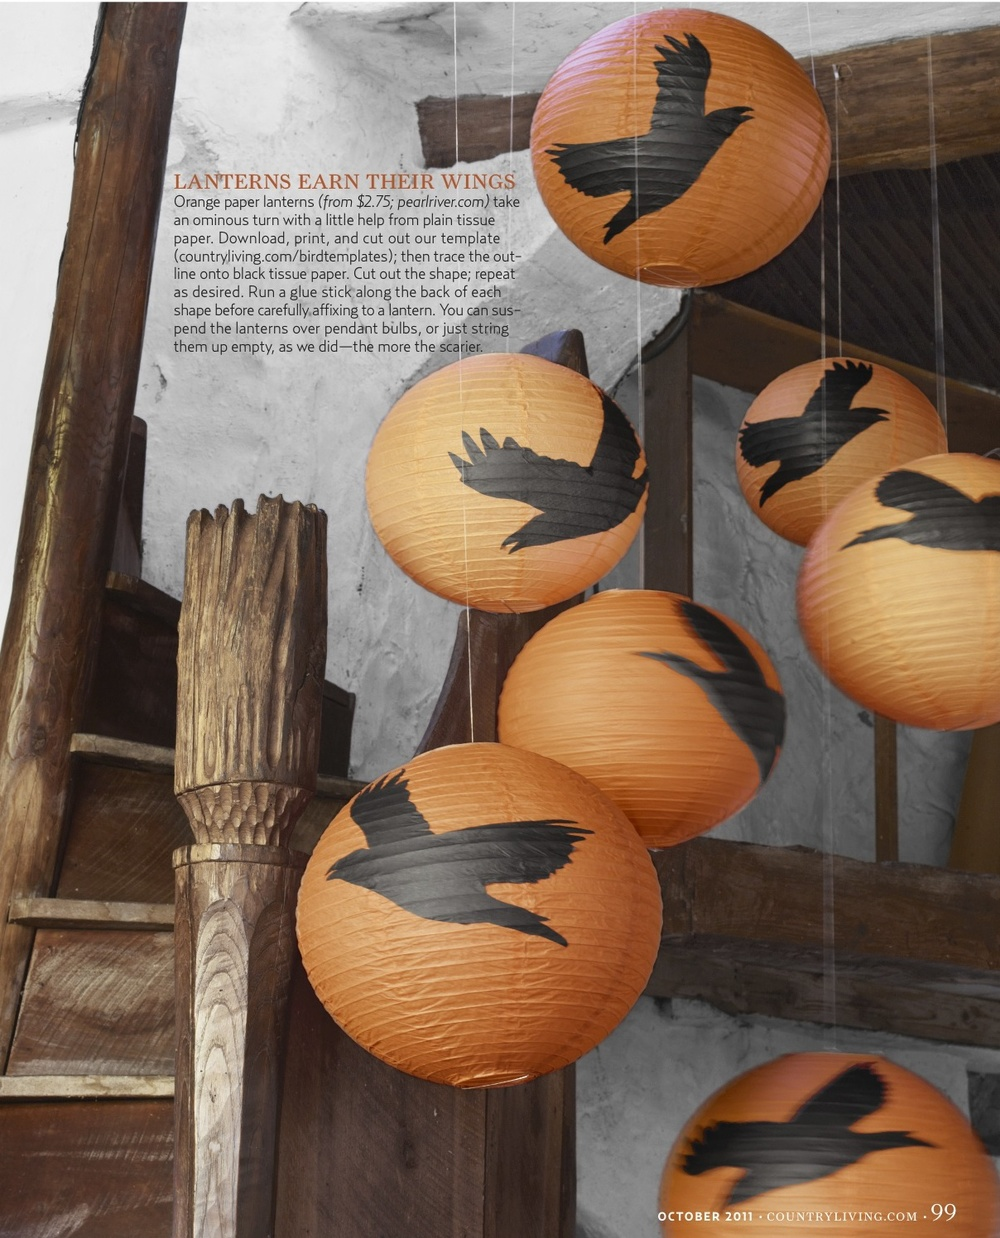 halloweenbirdslanterns.jpg